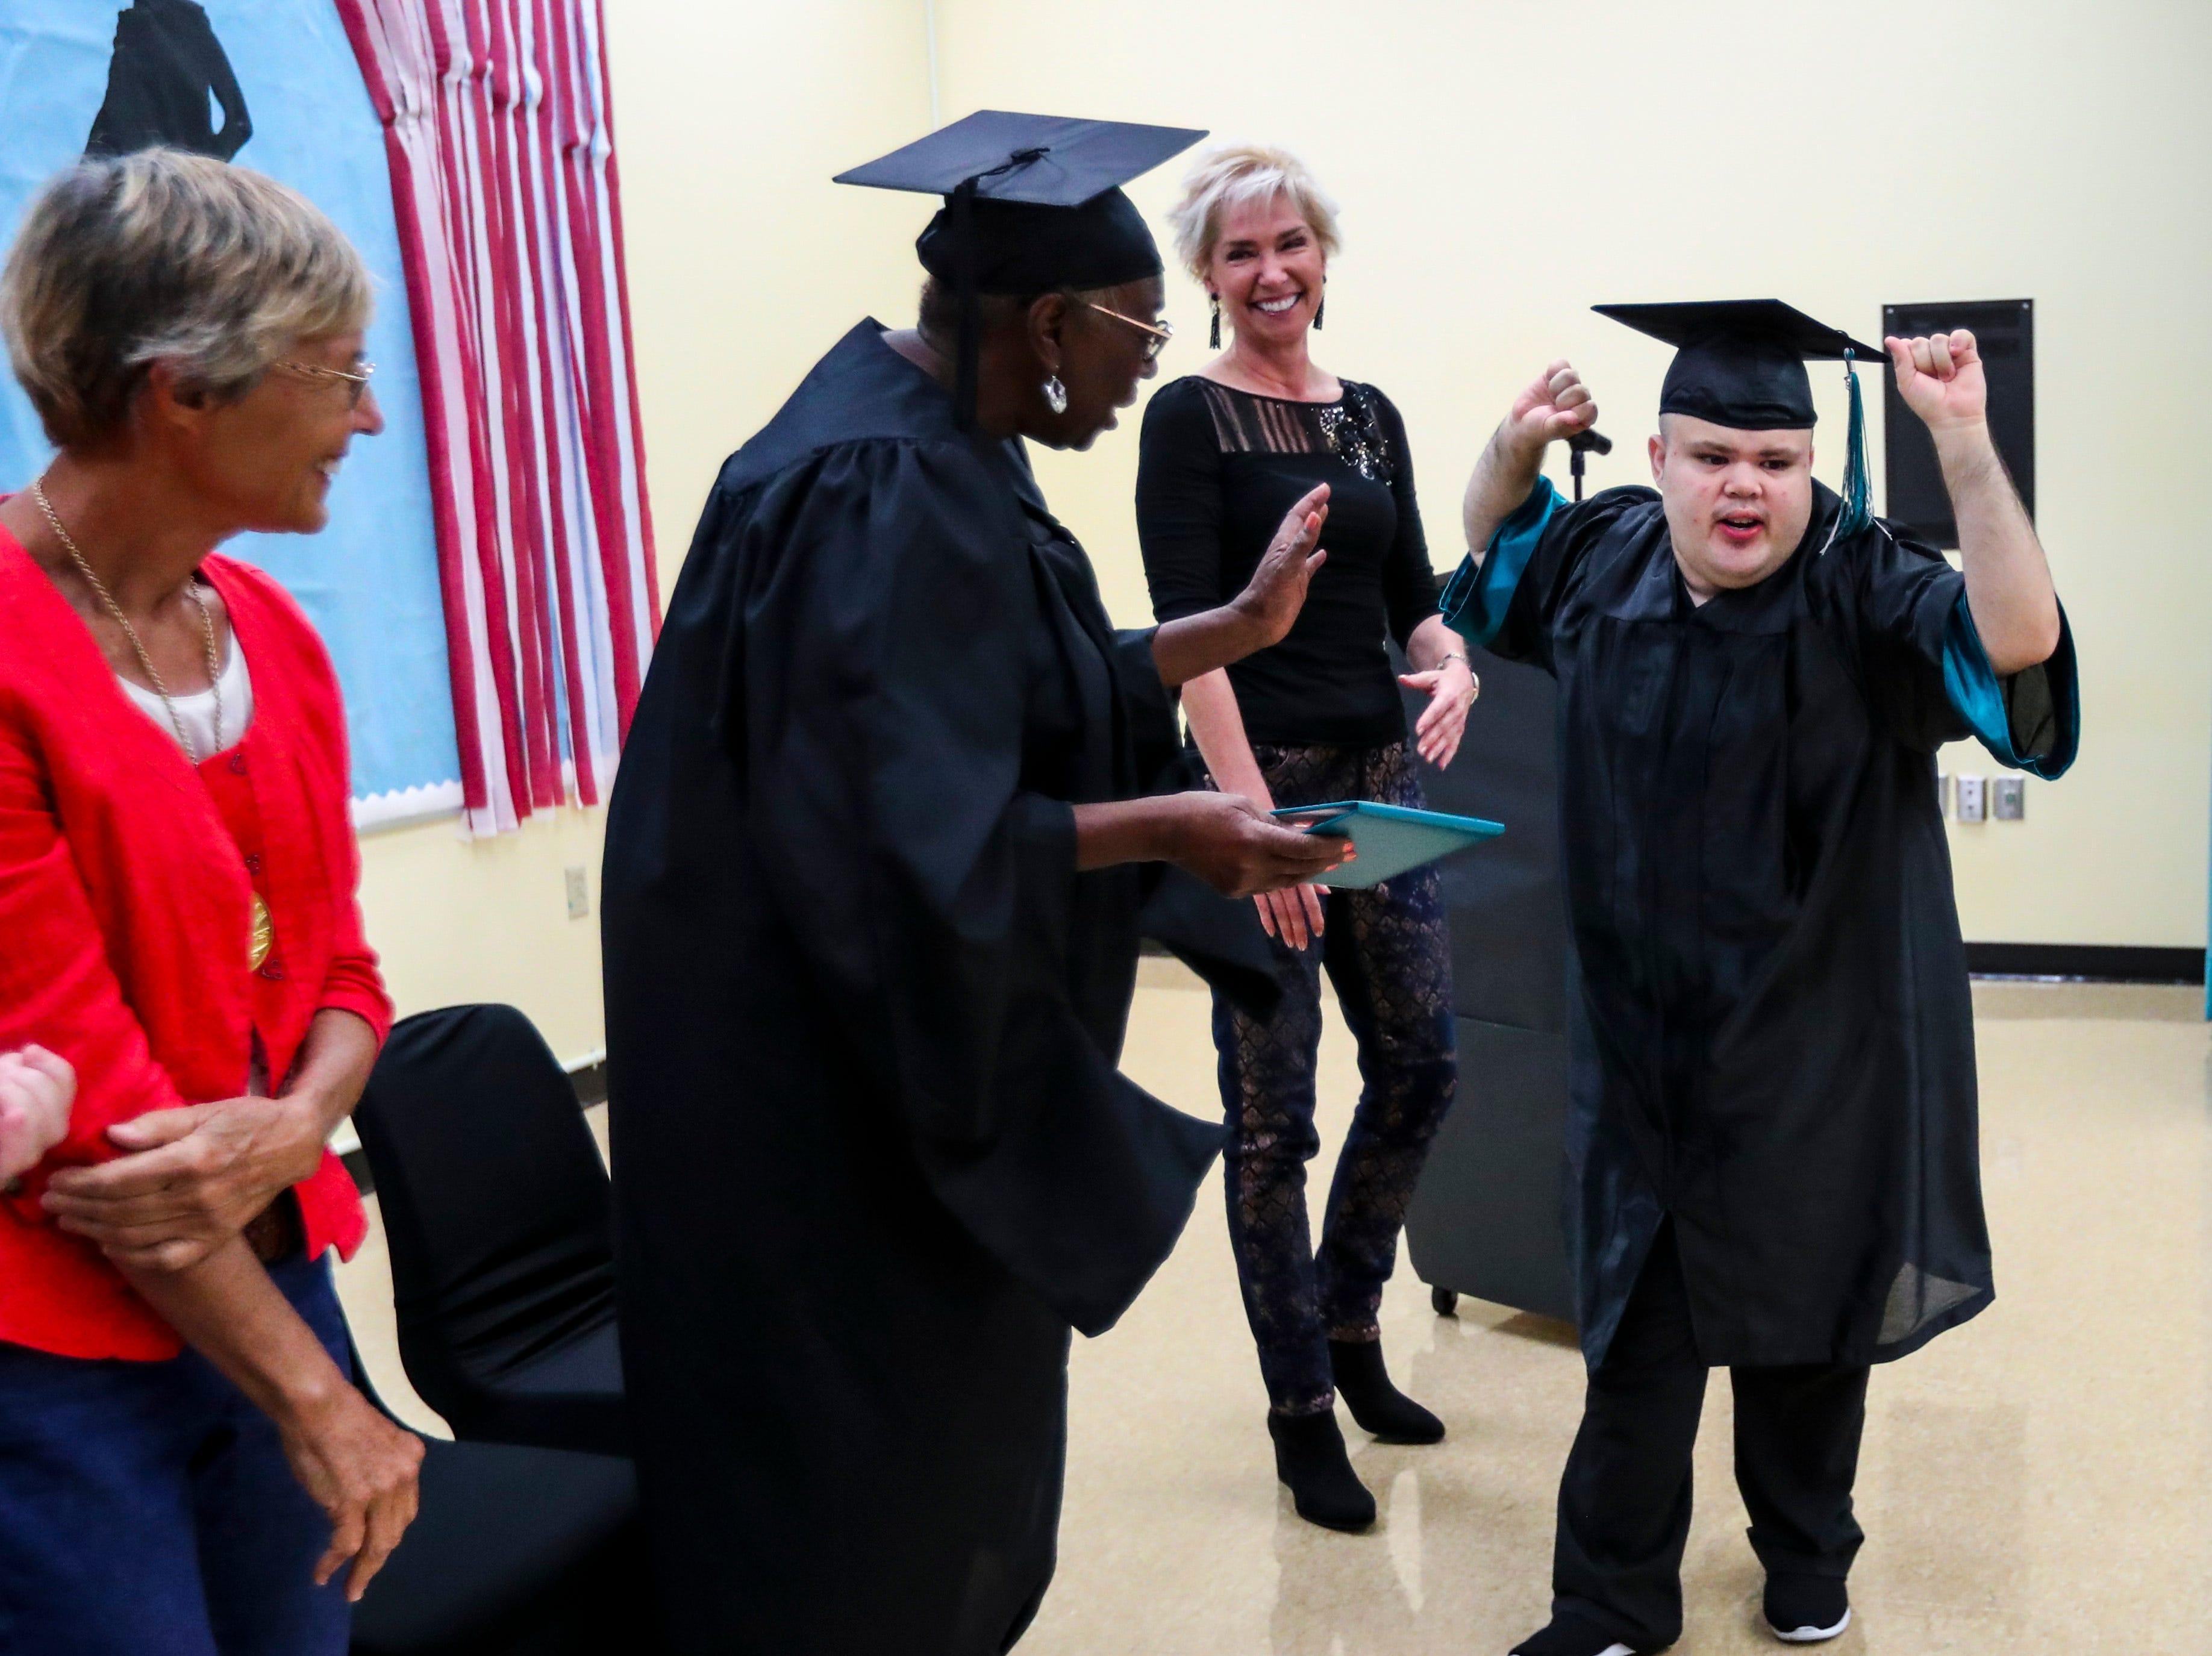 Daviel Deras was excited to receive his diploma. School Board member, Gwynetta Gittens, handed out the diplomas to the students. Ruthie Lohmeyer, Principal, looks on.  13 students at Buckingham Exceptional Student Center graduated during a ceremony in their honor. Family, friends, and staff were there to honor the graduates.